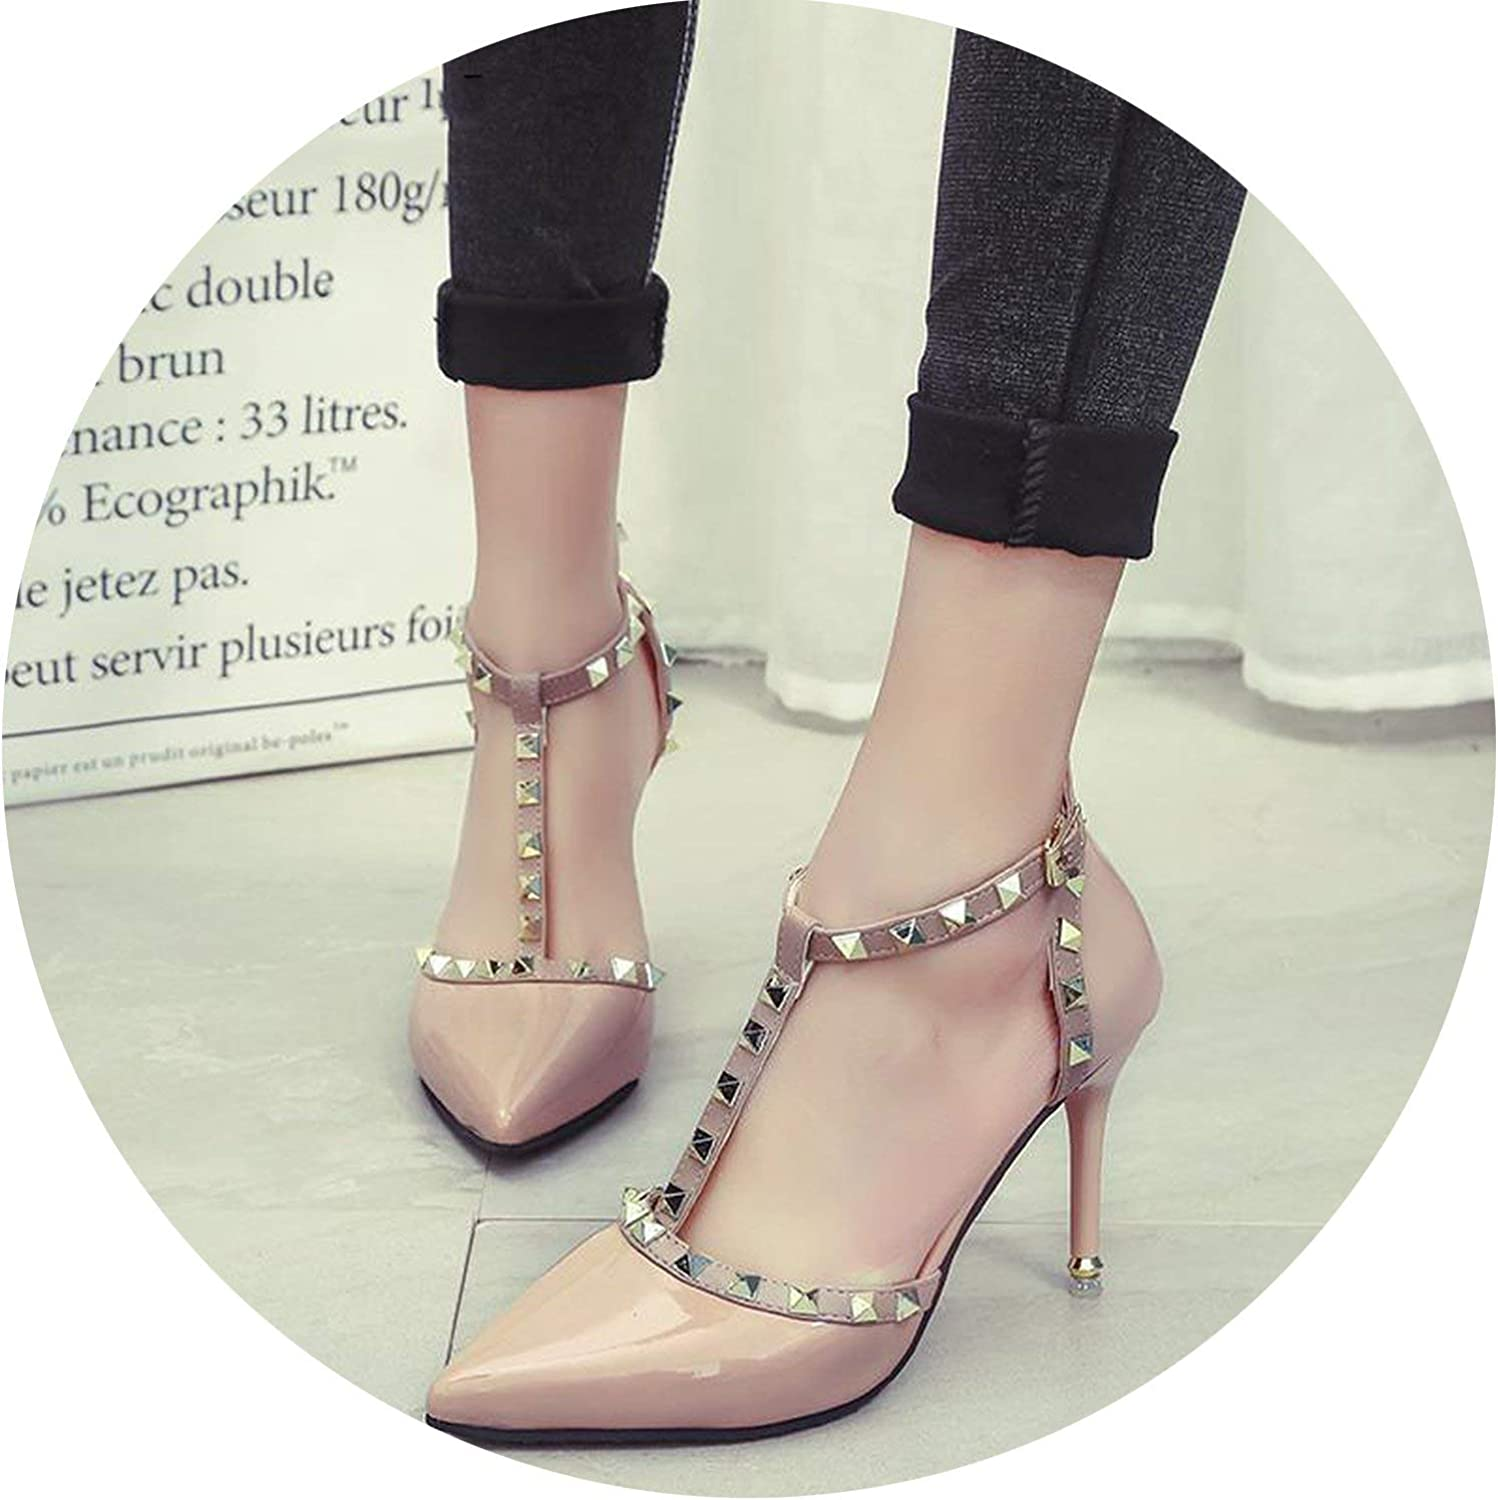 HANBINGPO New Women Pumps Summer Fashion Sexy Rivets Pointed Toe Wedding Party High Heeled shoes Woman Sandals shoes women,Nude,6